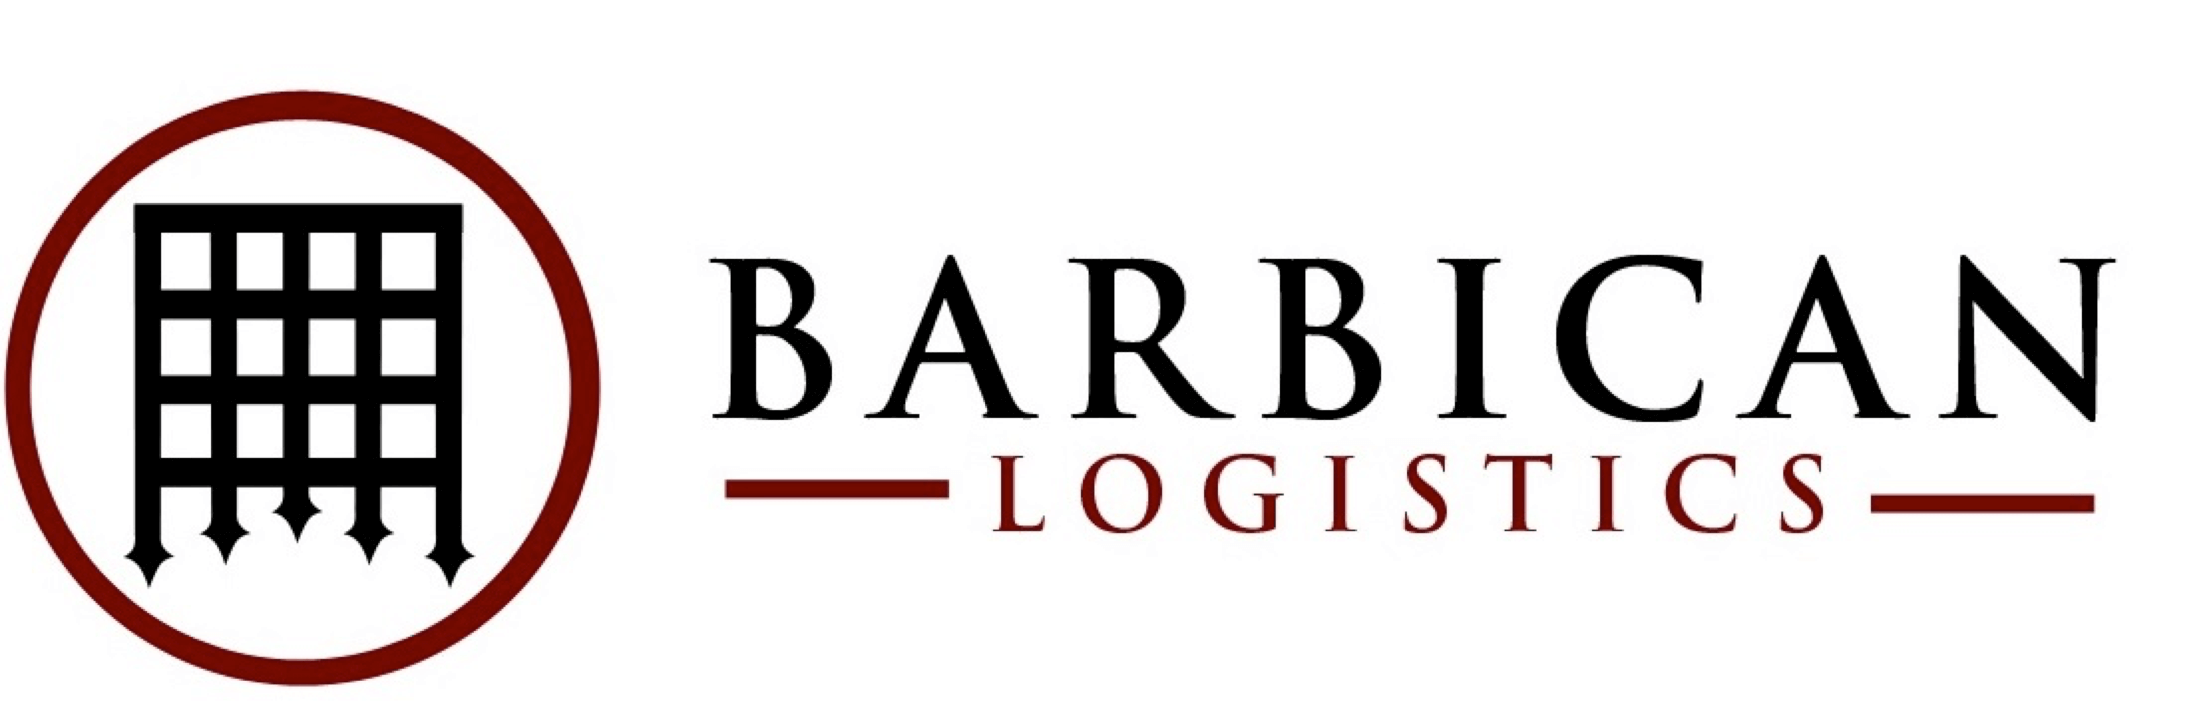 Barbican Logistics